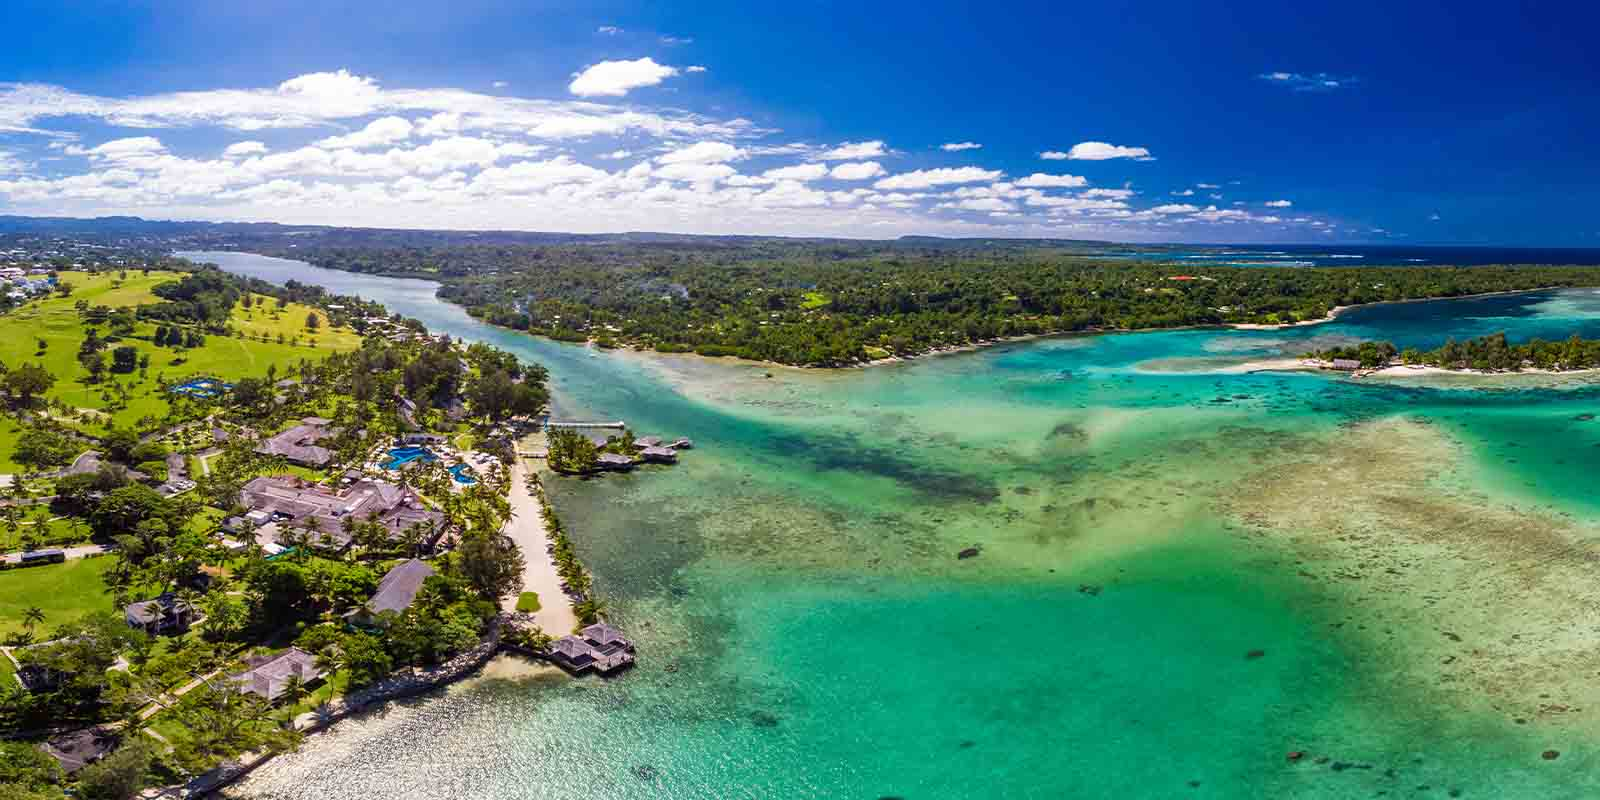 Vanuatu is an archipelago nation spread across 82 islands situated just between New Zealand and Australia